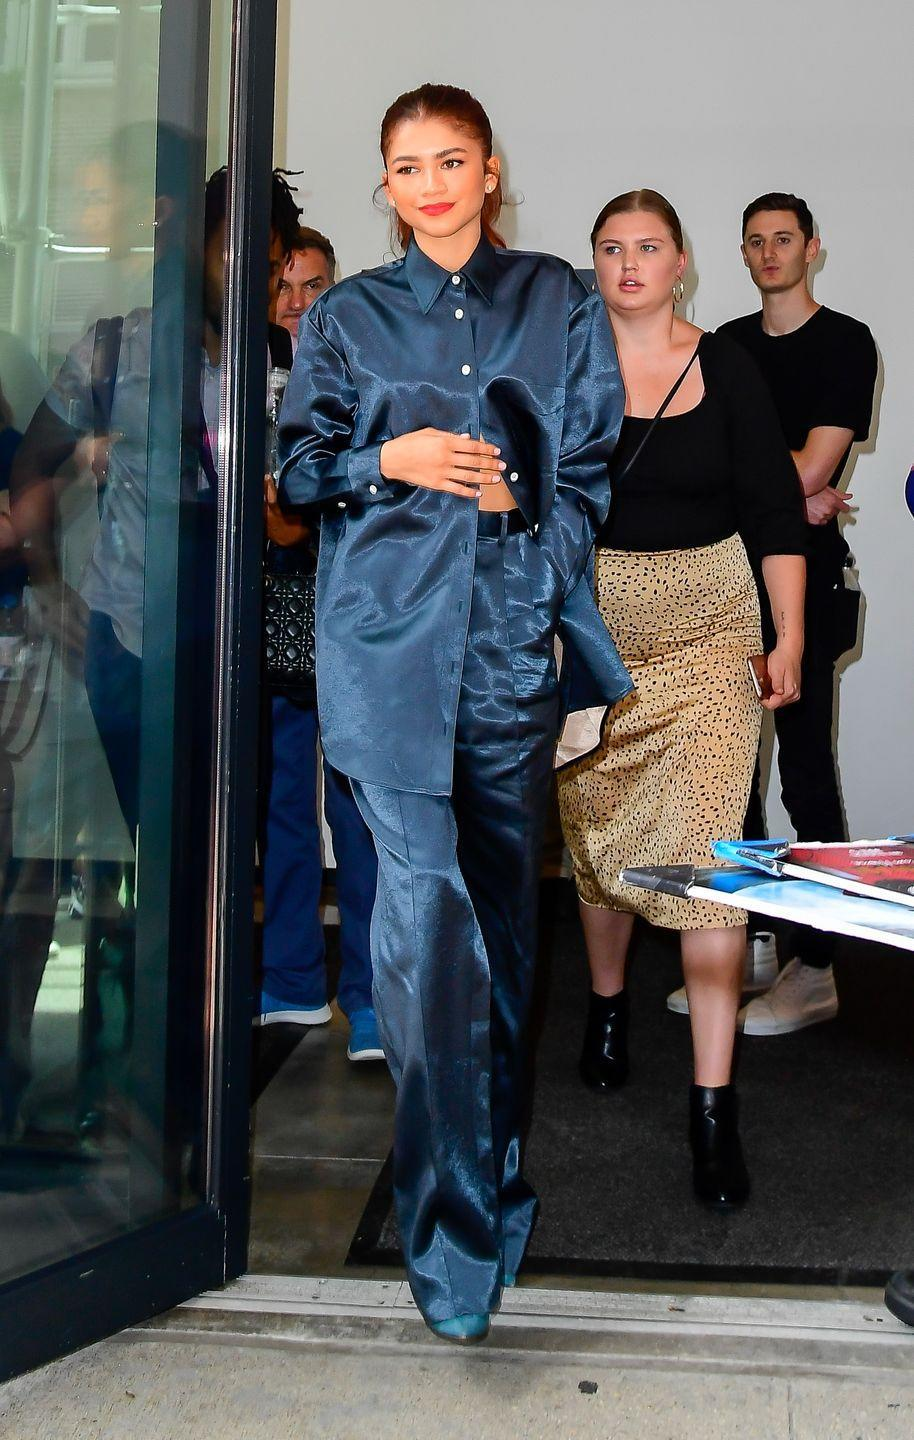 <p>Pajamas are no longer just for bedtime. Add a stylish heel or even a classic sneaker for a transitional outfit. All you have to do when you get home is take off the accessories, easy!</p>